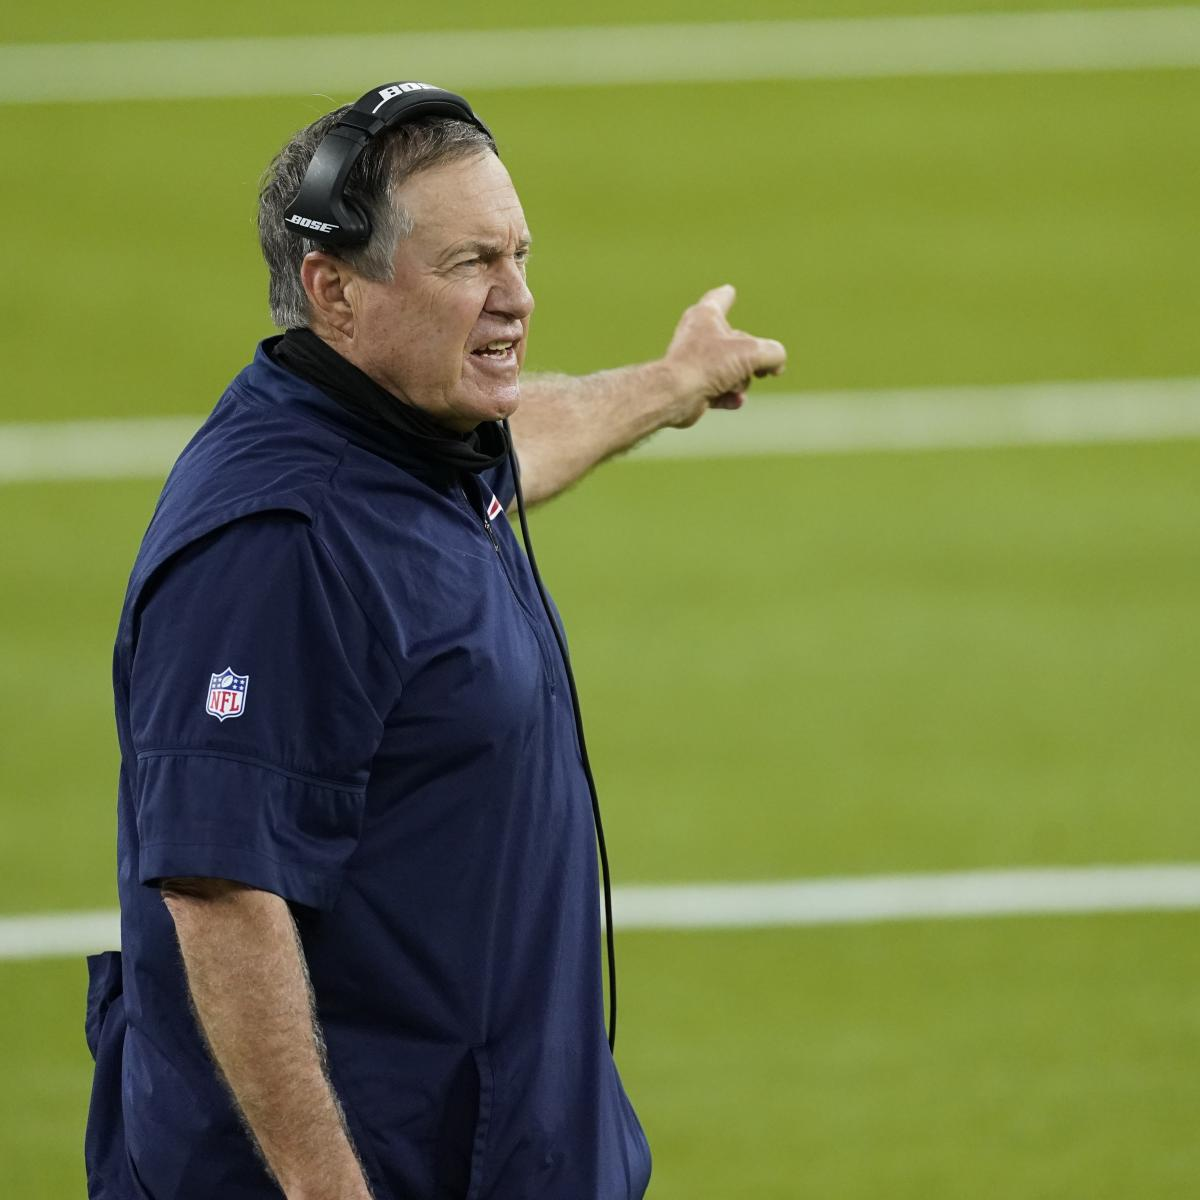 Report: Patriots, Panthers Have Done 'Groundwork' on Trade for No. 8 Draft Pick | Bleacher Report